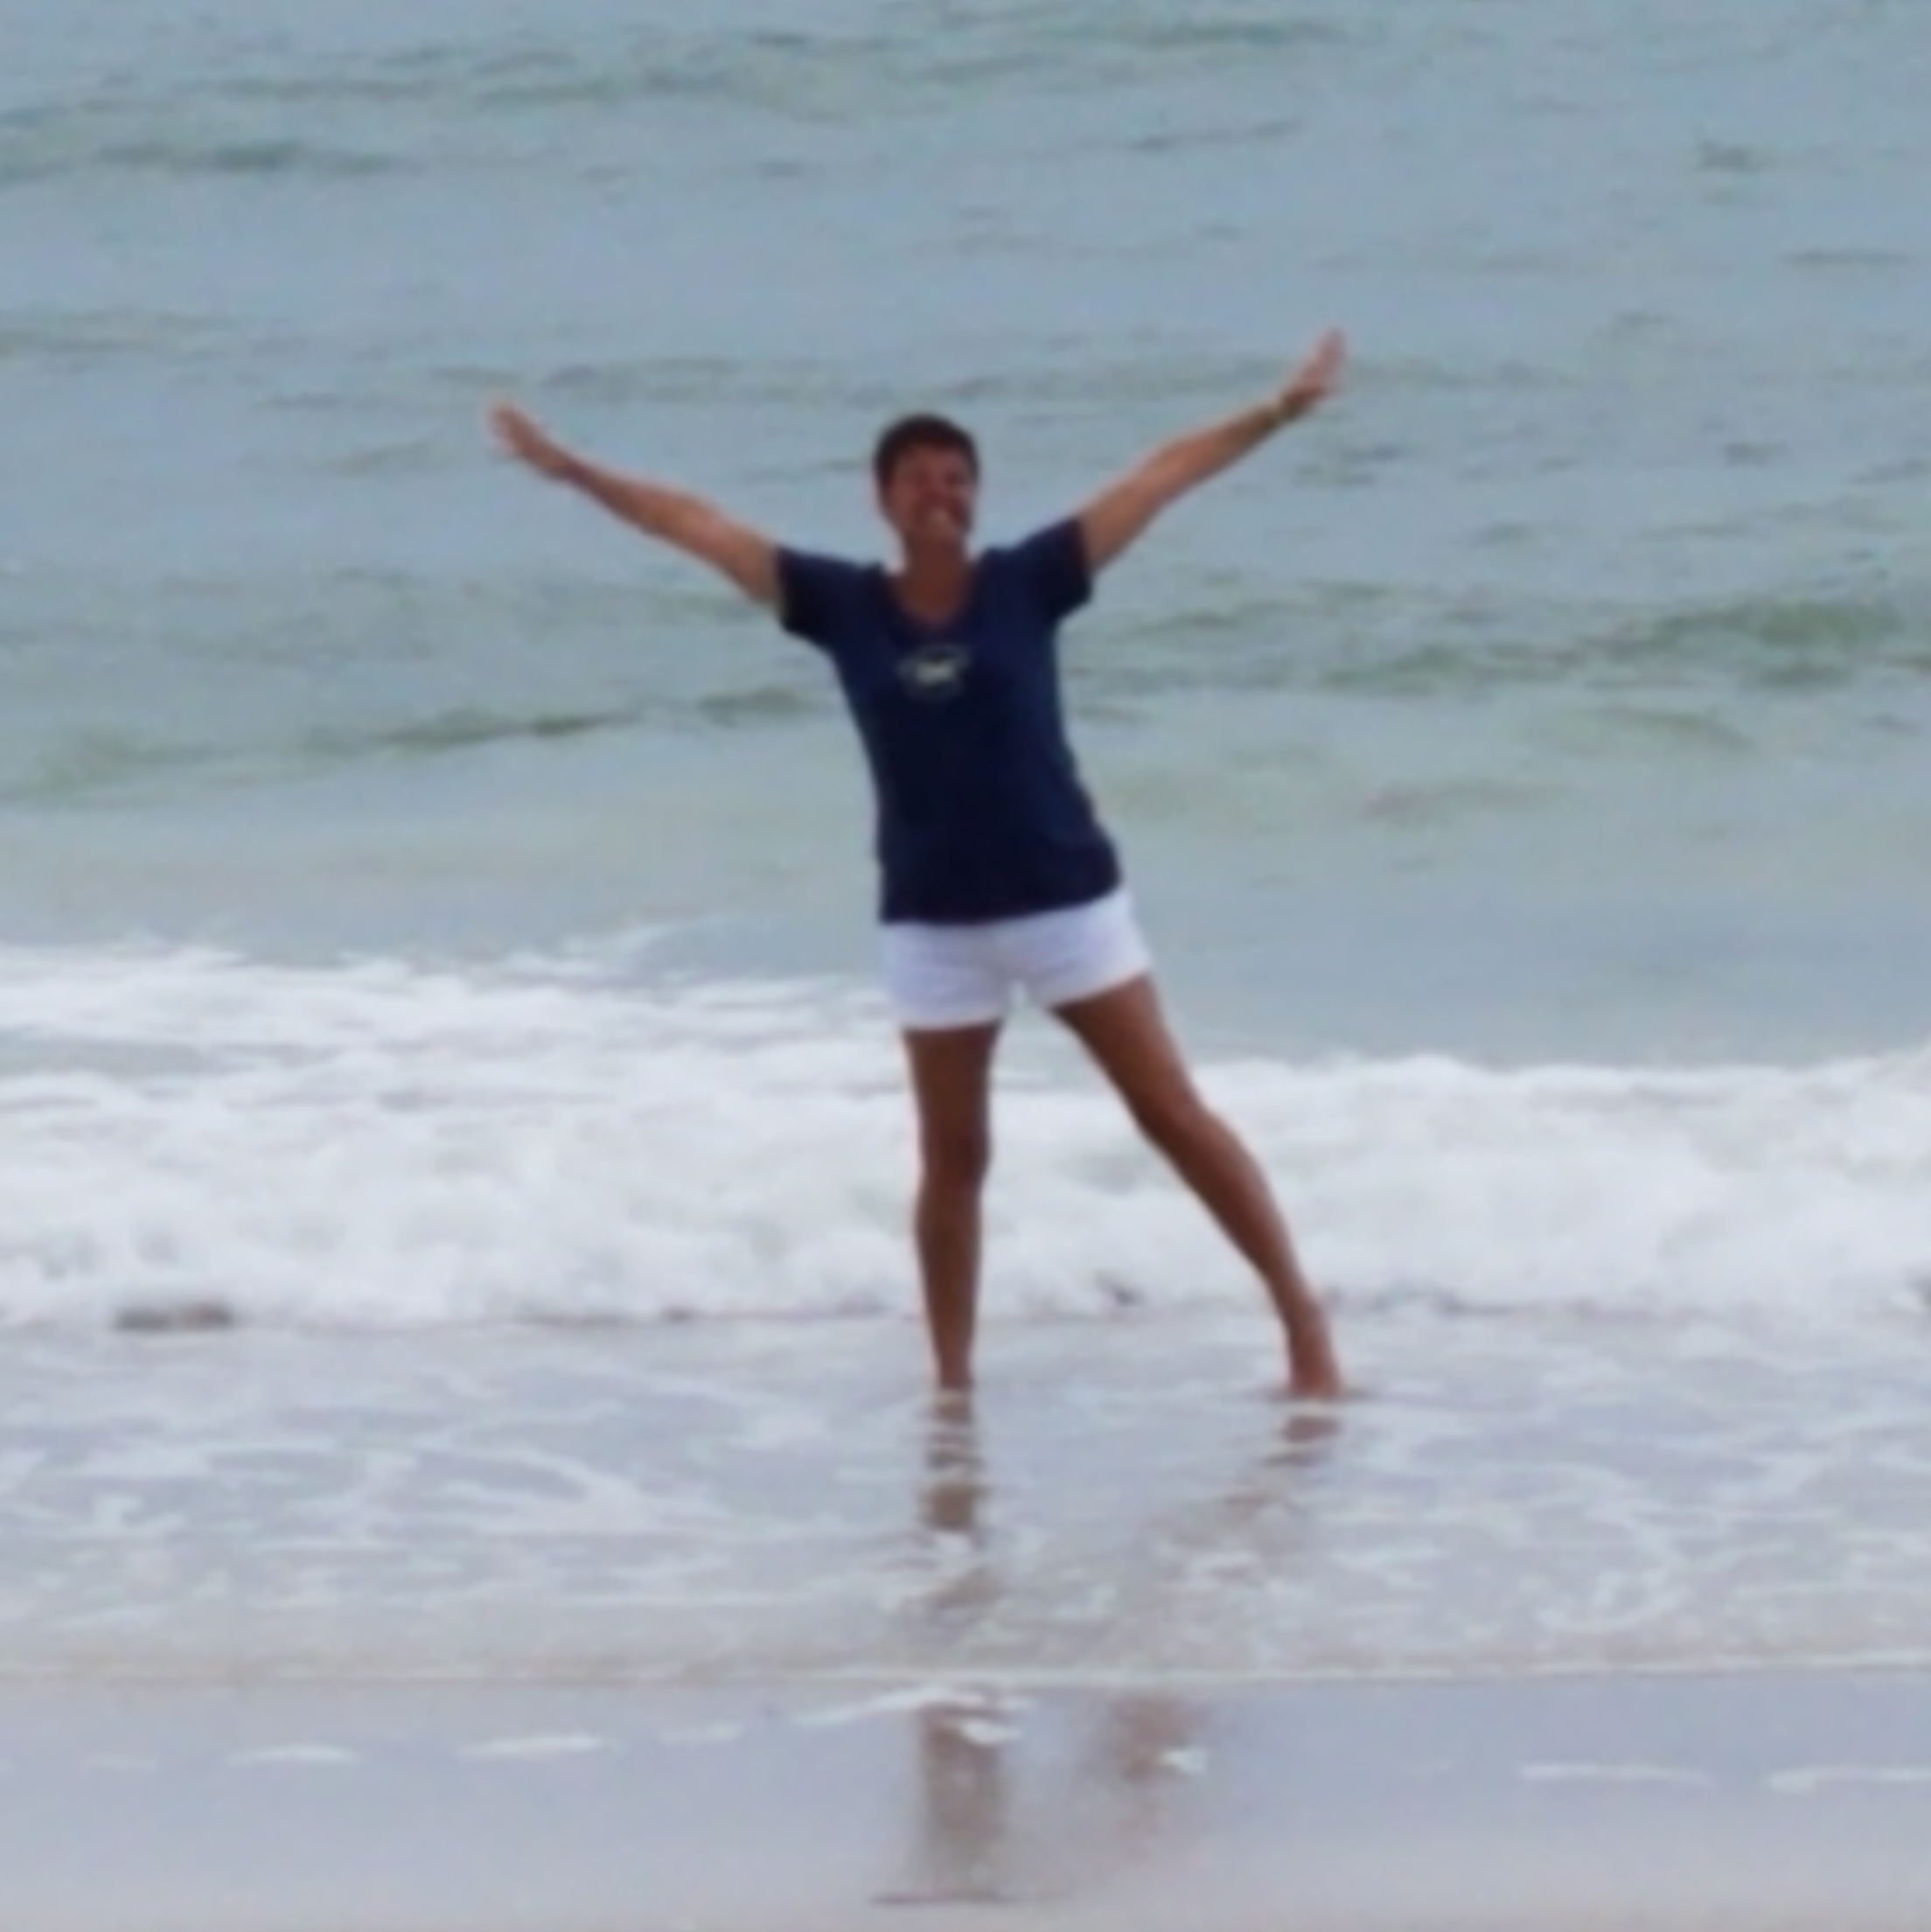 Sandi Smith standing on the beach with arms open like a Y and legs spread apart